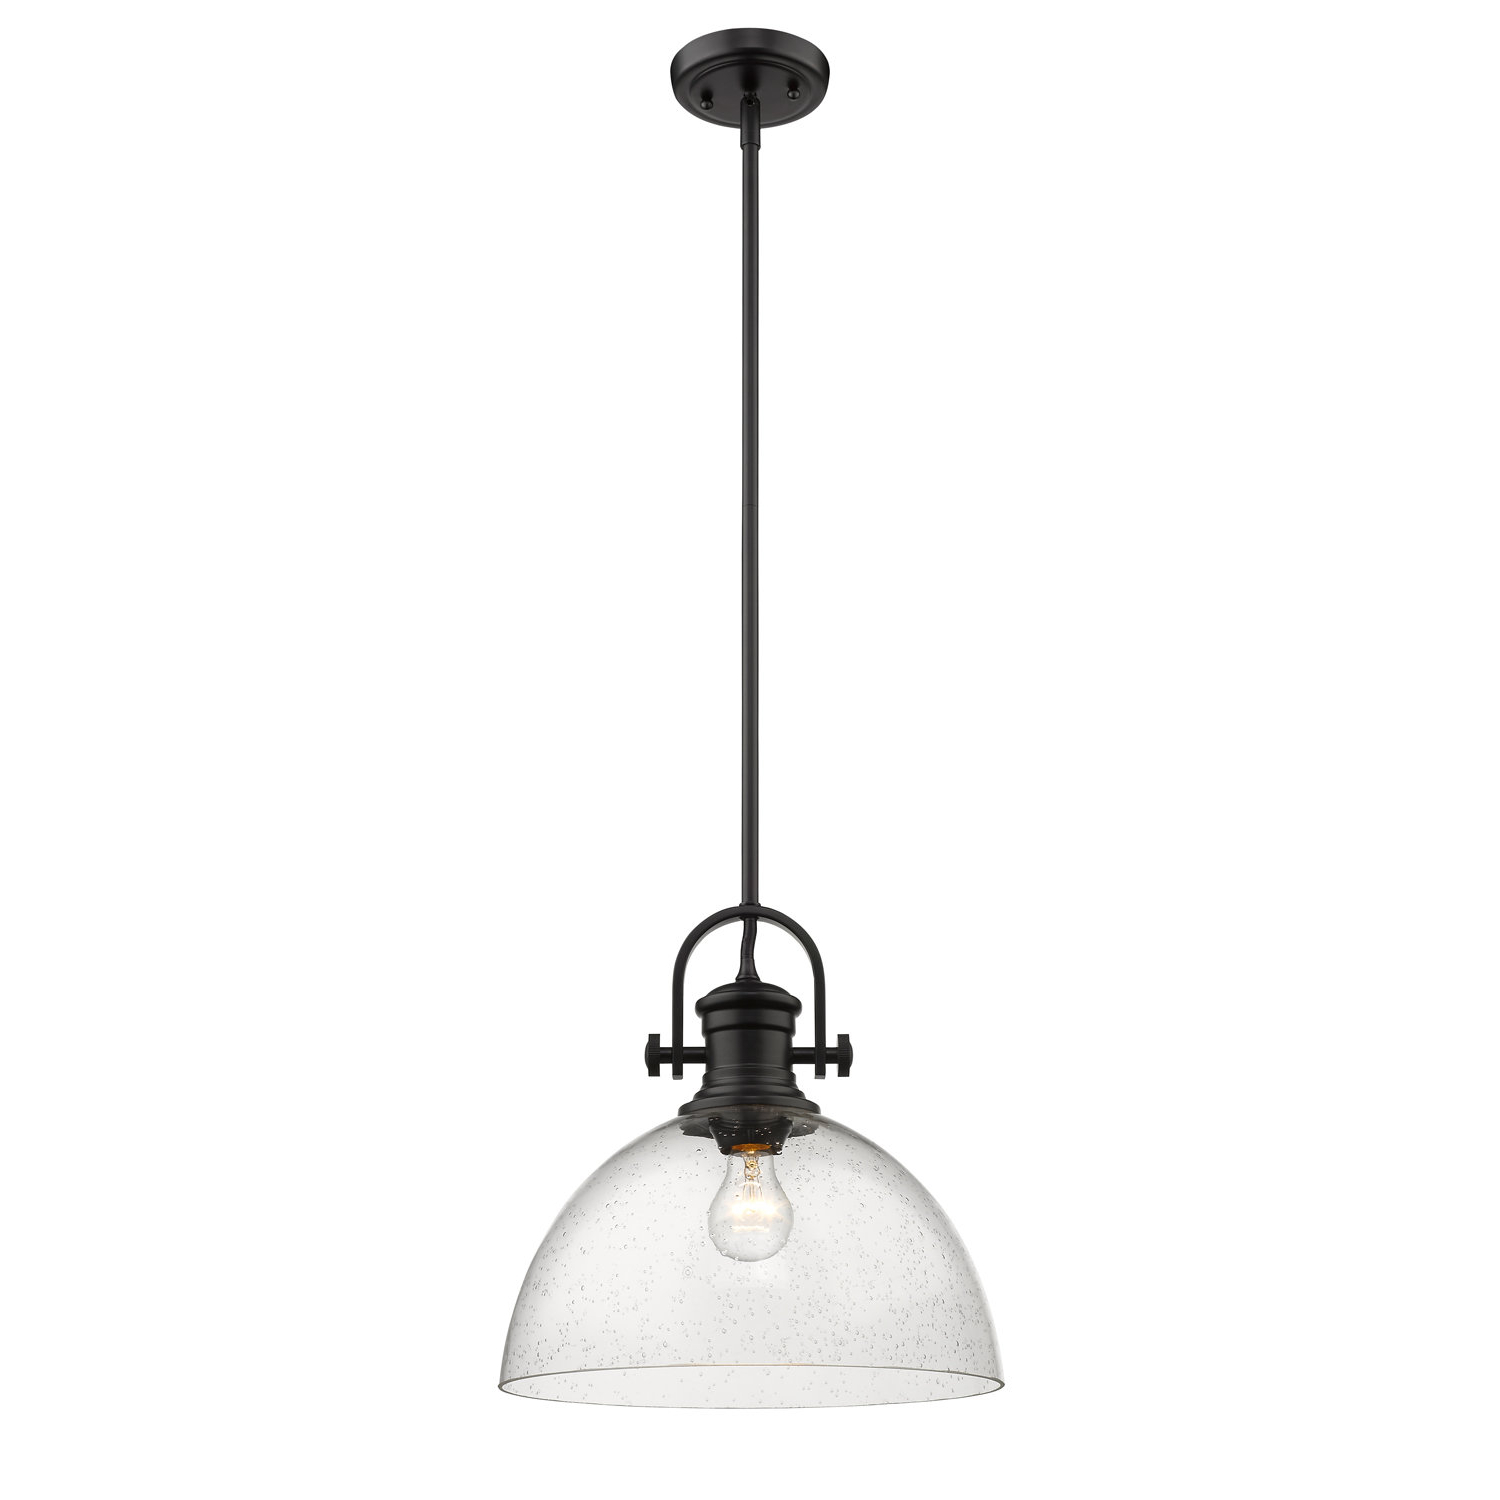 Macon 1 Light Single Dome Pendants For Widely Used Vedder 1 Light Dome Pendant (View 11 of 25)